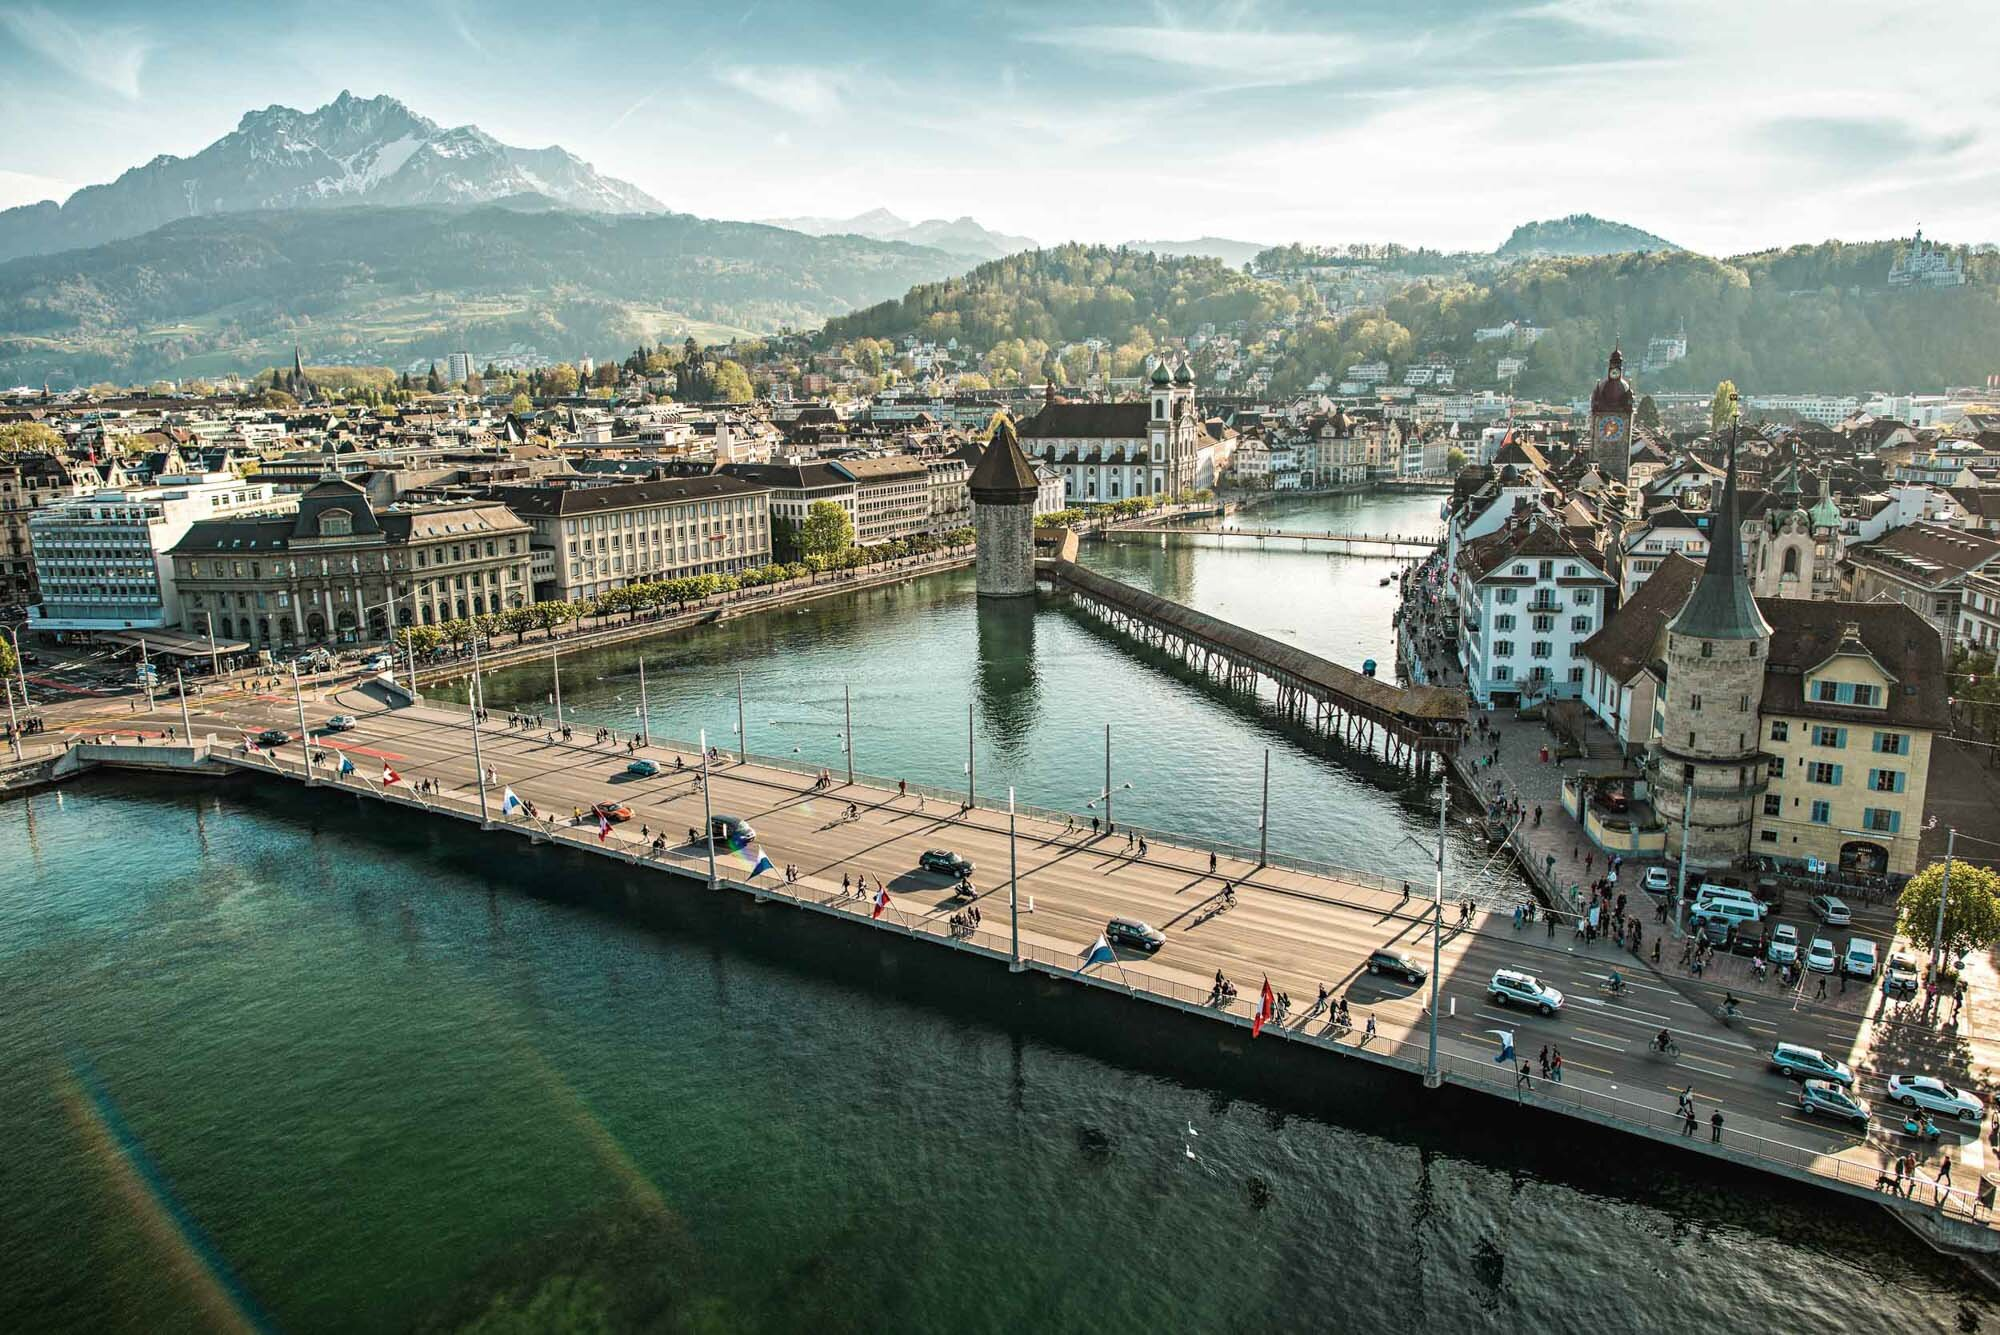 City panorama with Pilatus, Chapel Bridge, and Guetsch. Copyright by: Switzerland Tourism